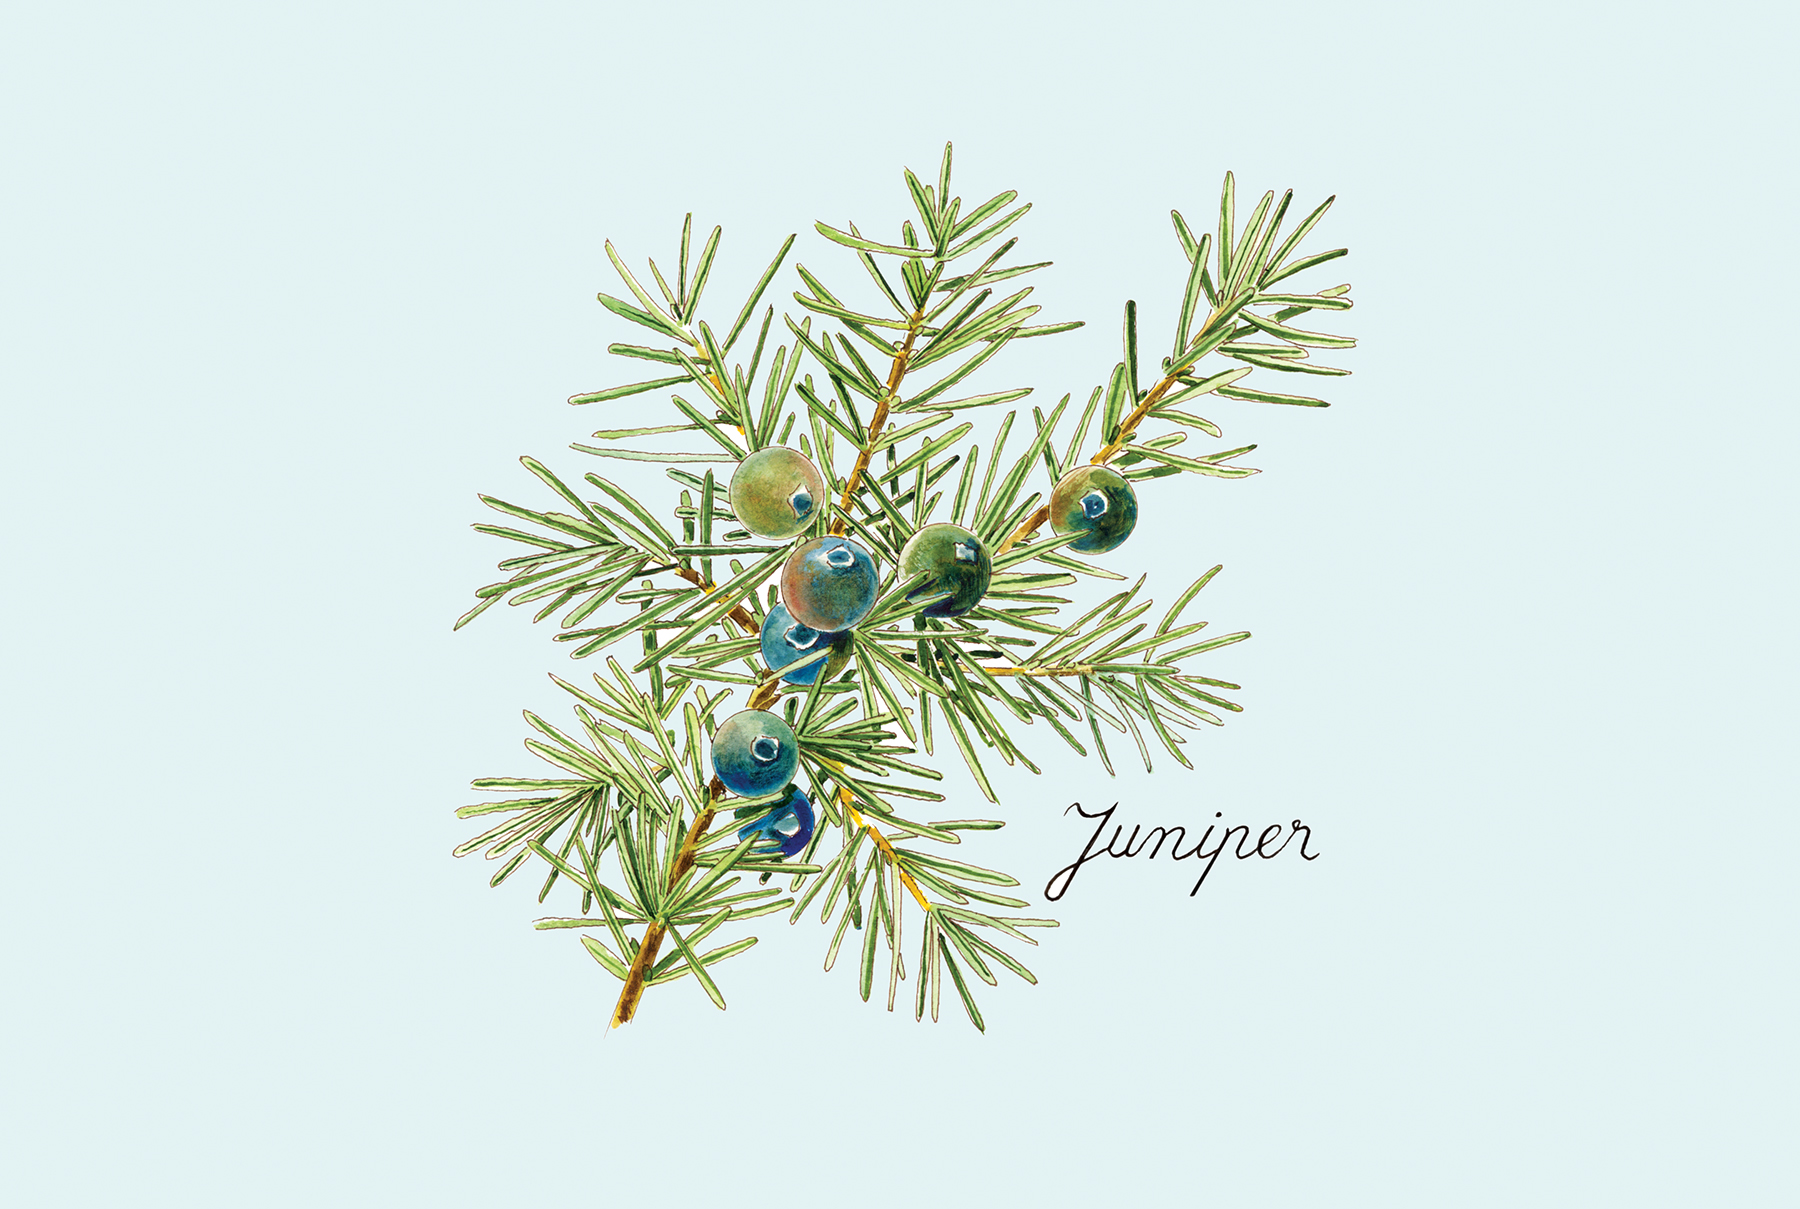 Juniper: Controls Oil